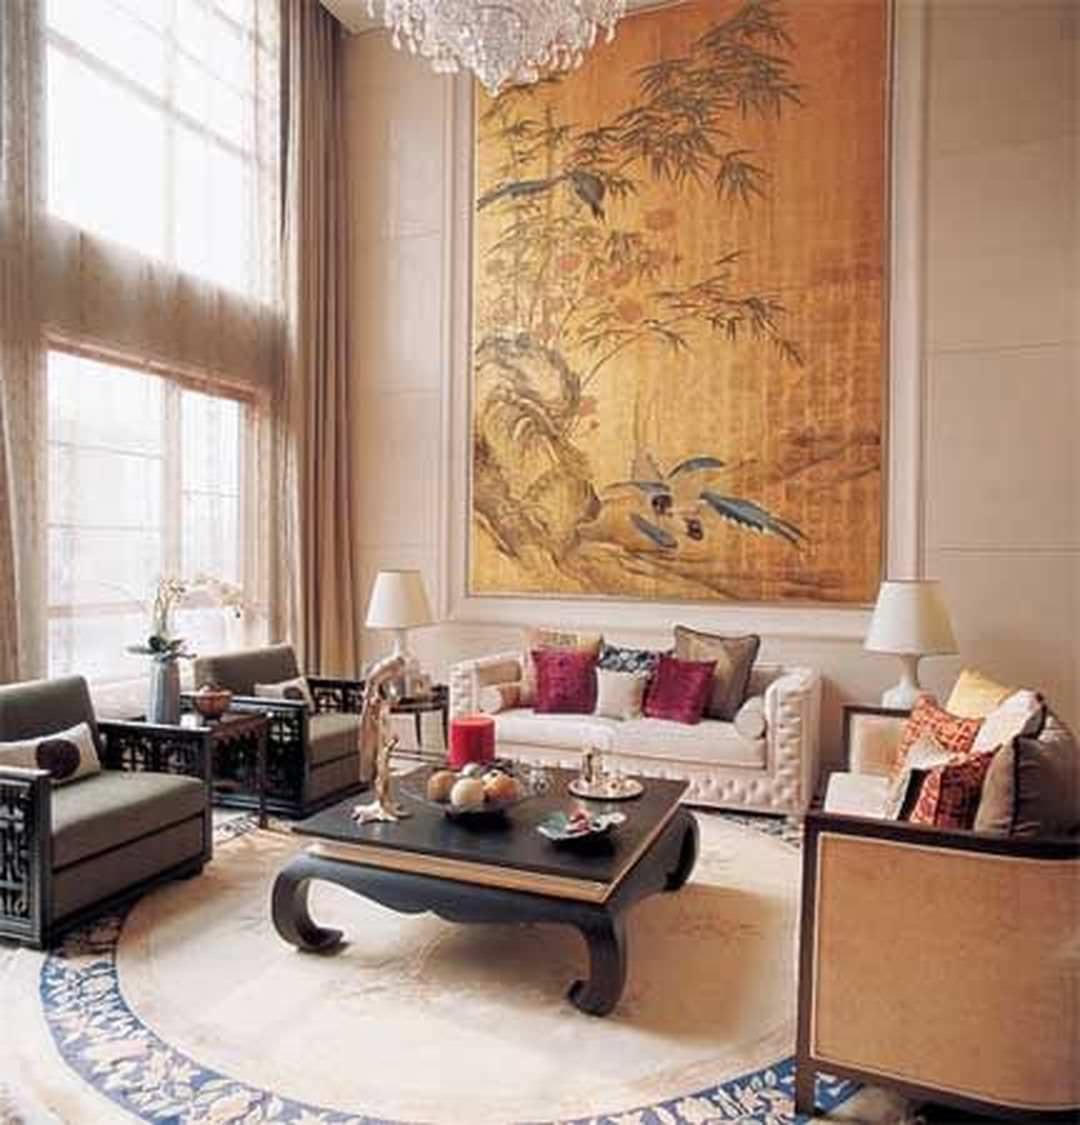 Merveilleux 23 Asian Inspired Living Room Decor